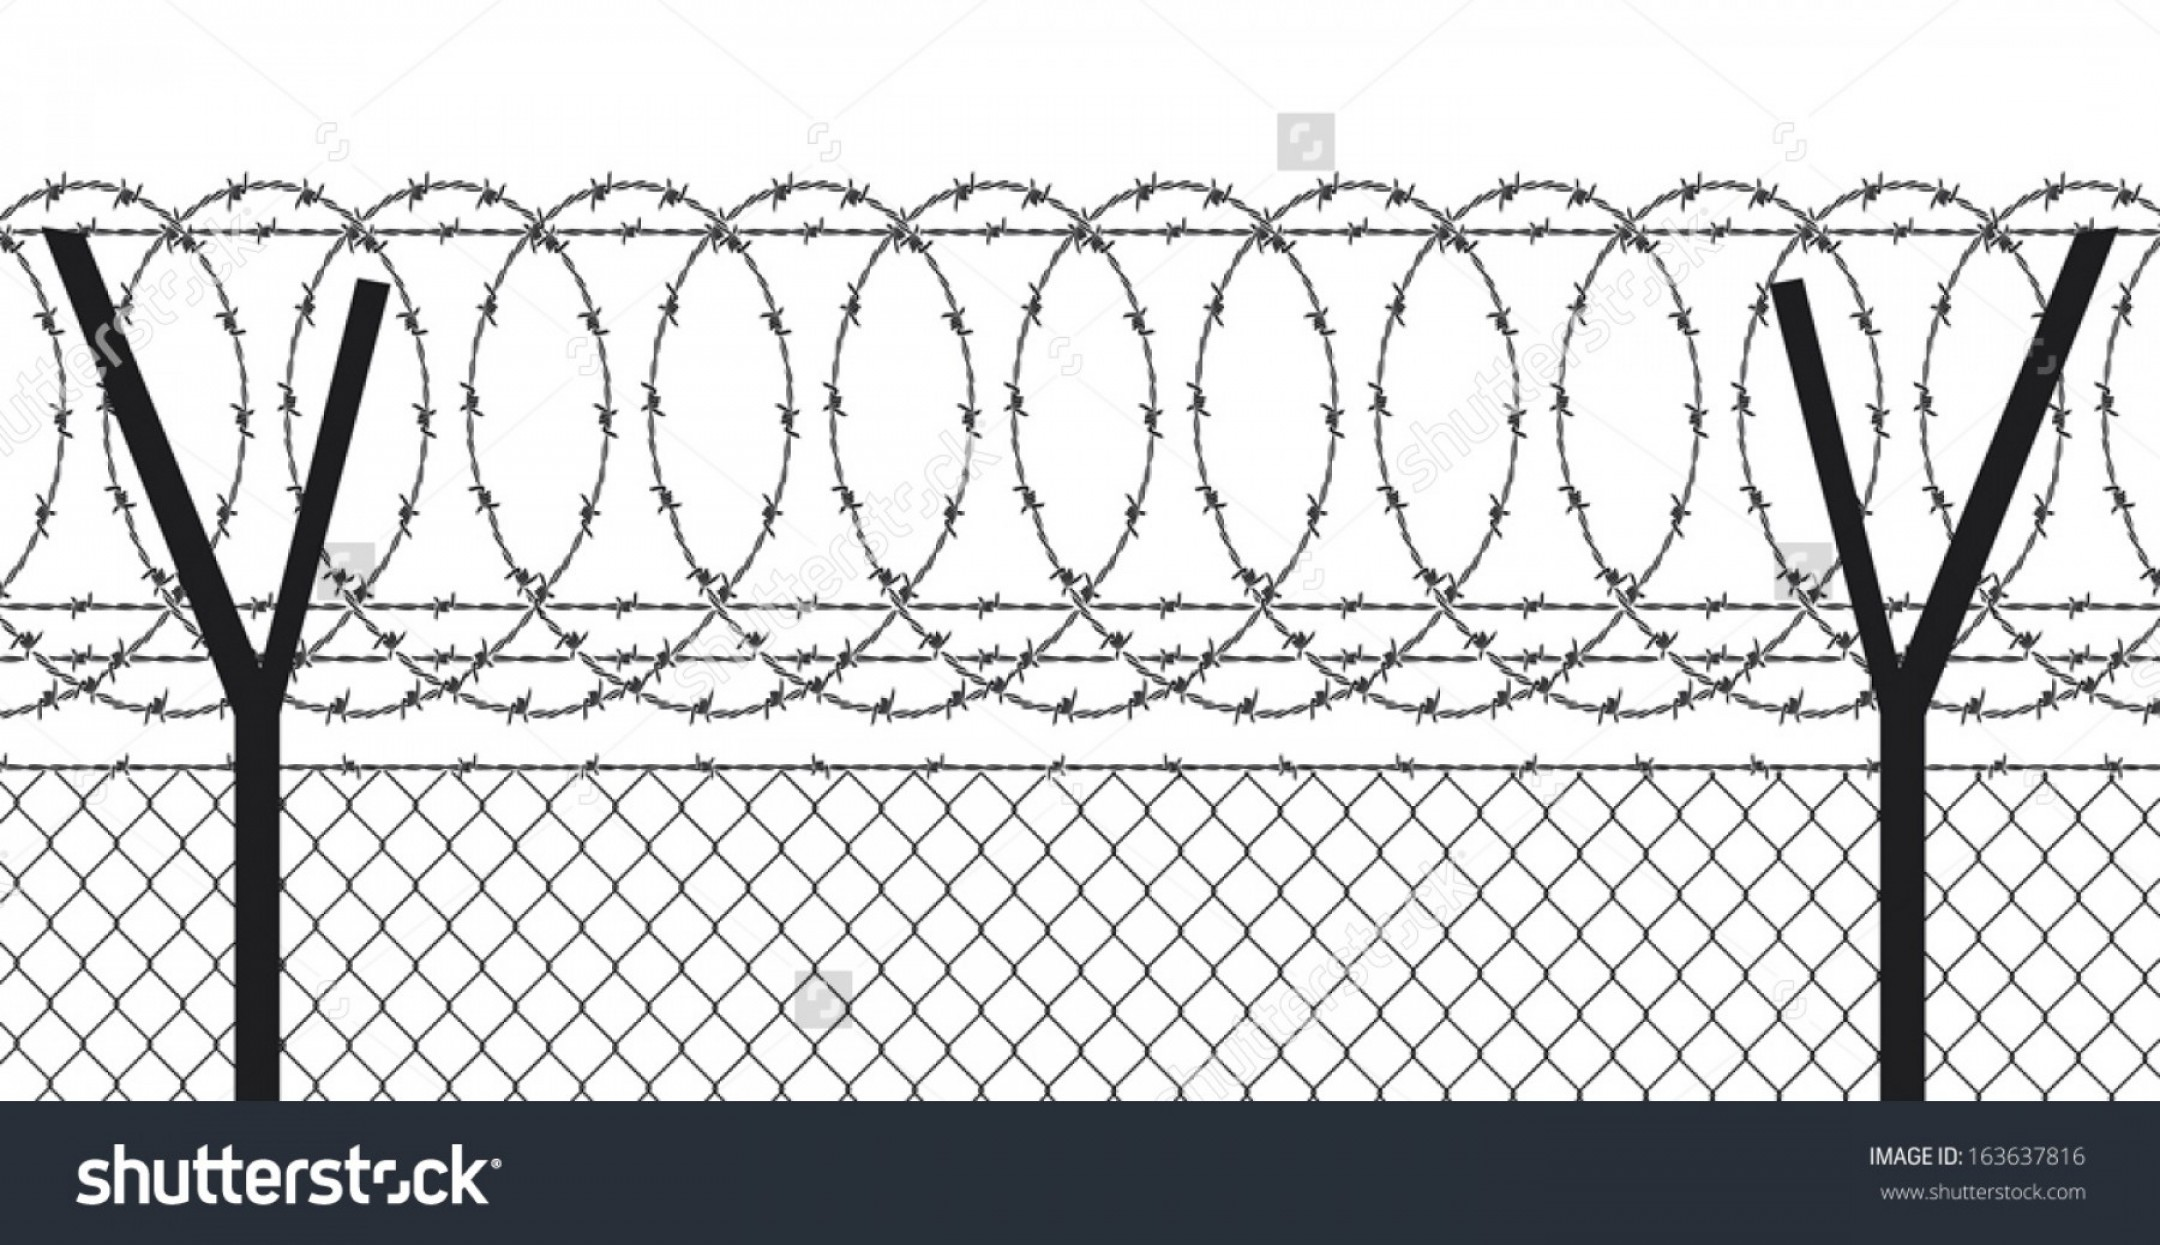 Fence Post Barbed Wire Vector Clip Art: Stock Vector Barbed Wire Fence Barbed Wire Fence Stock Vector Illustration Barb Wire Fence Unturned